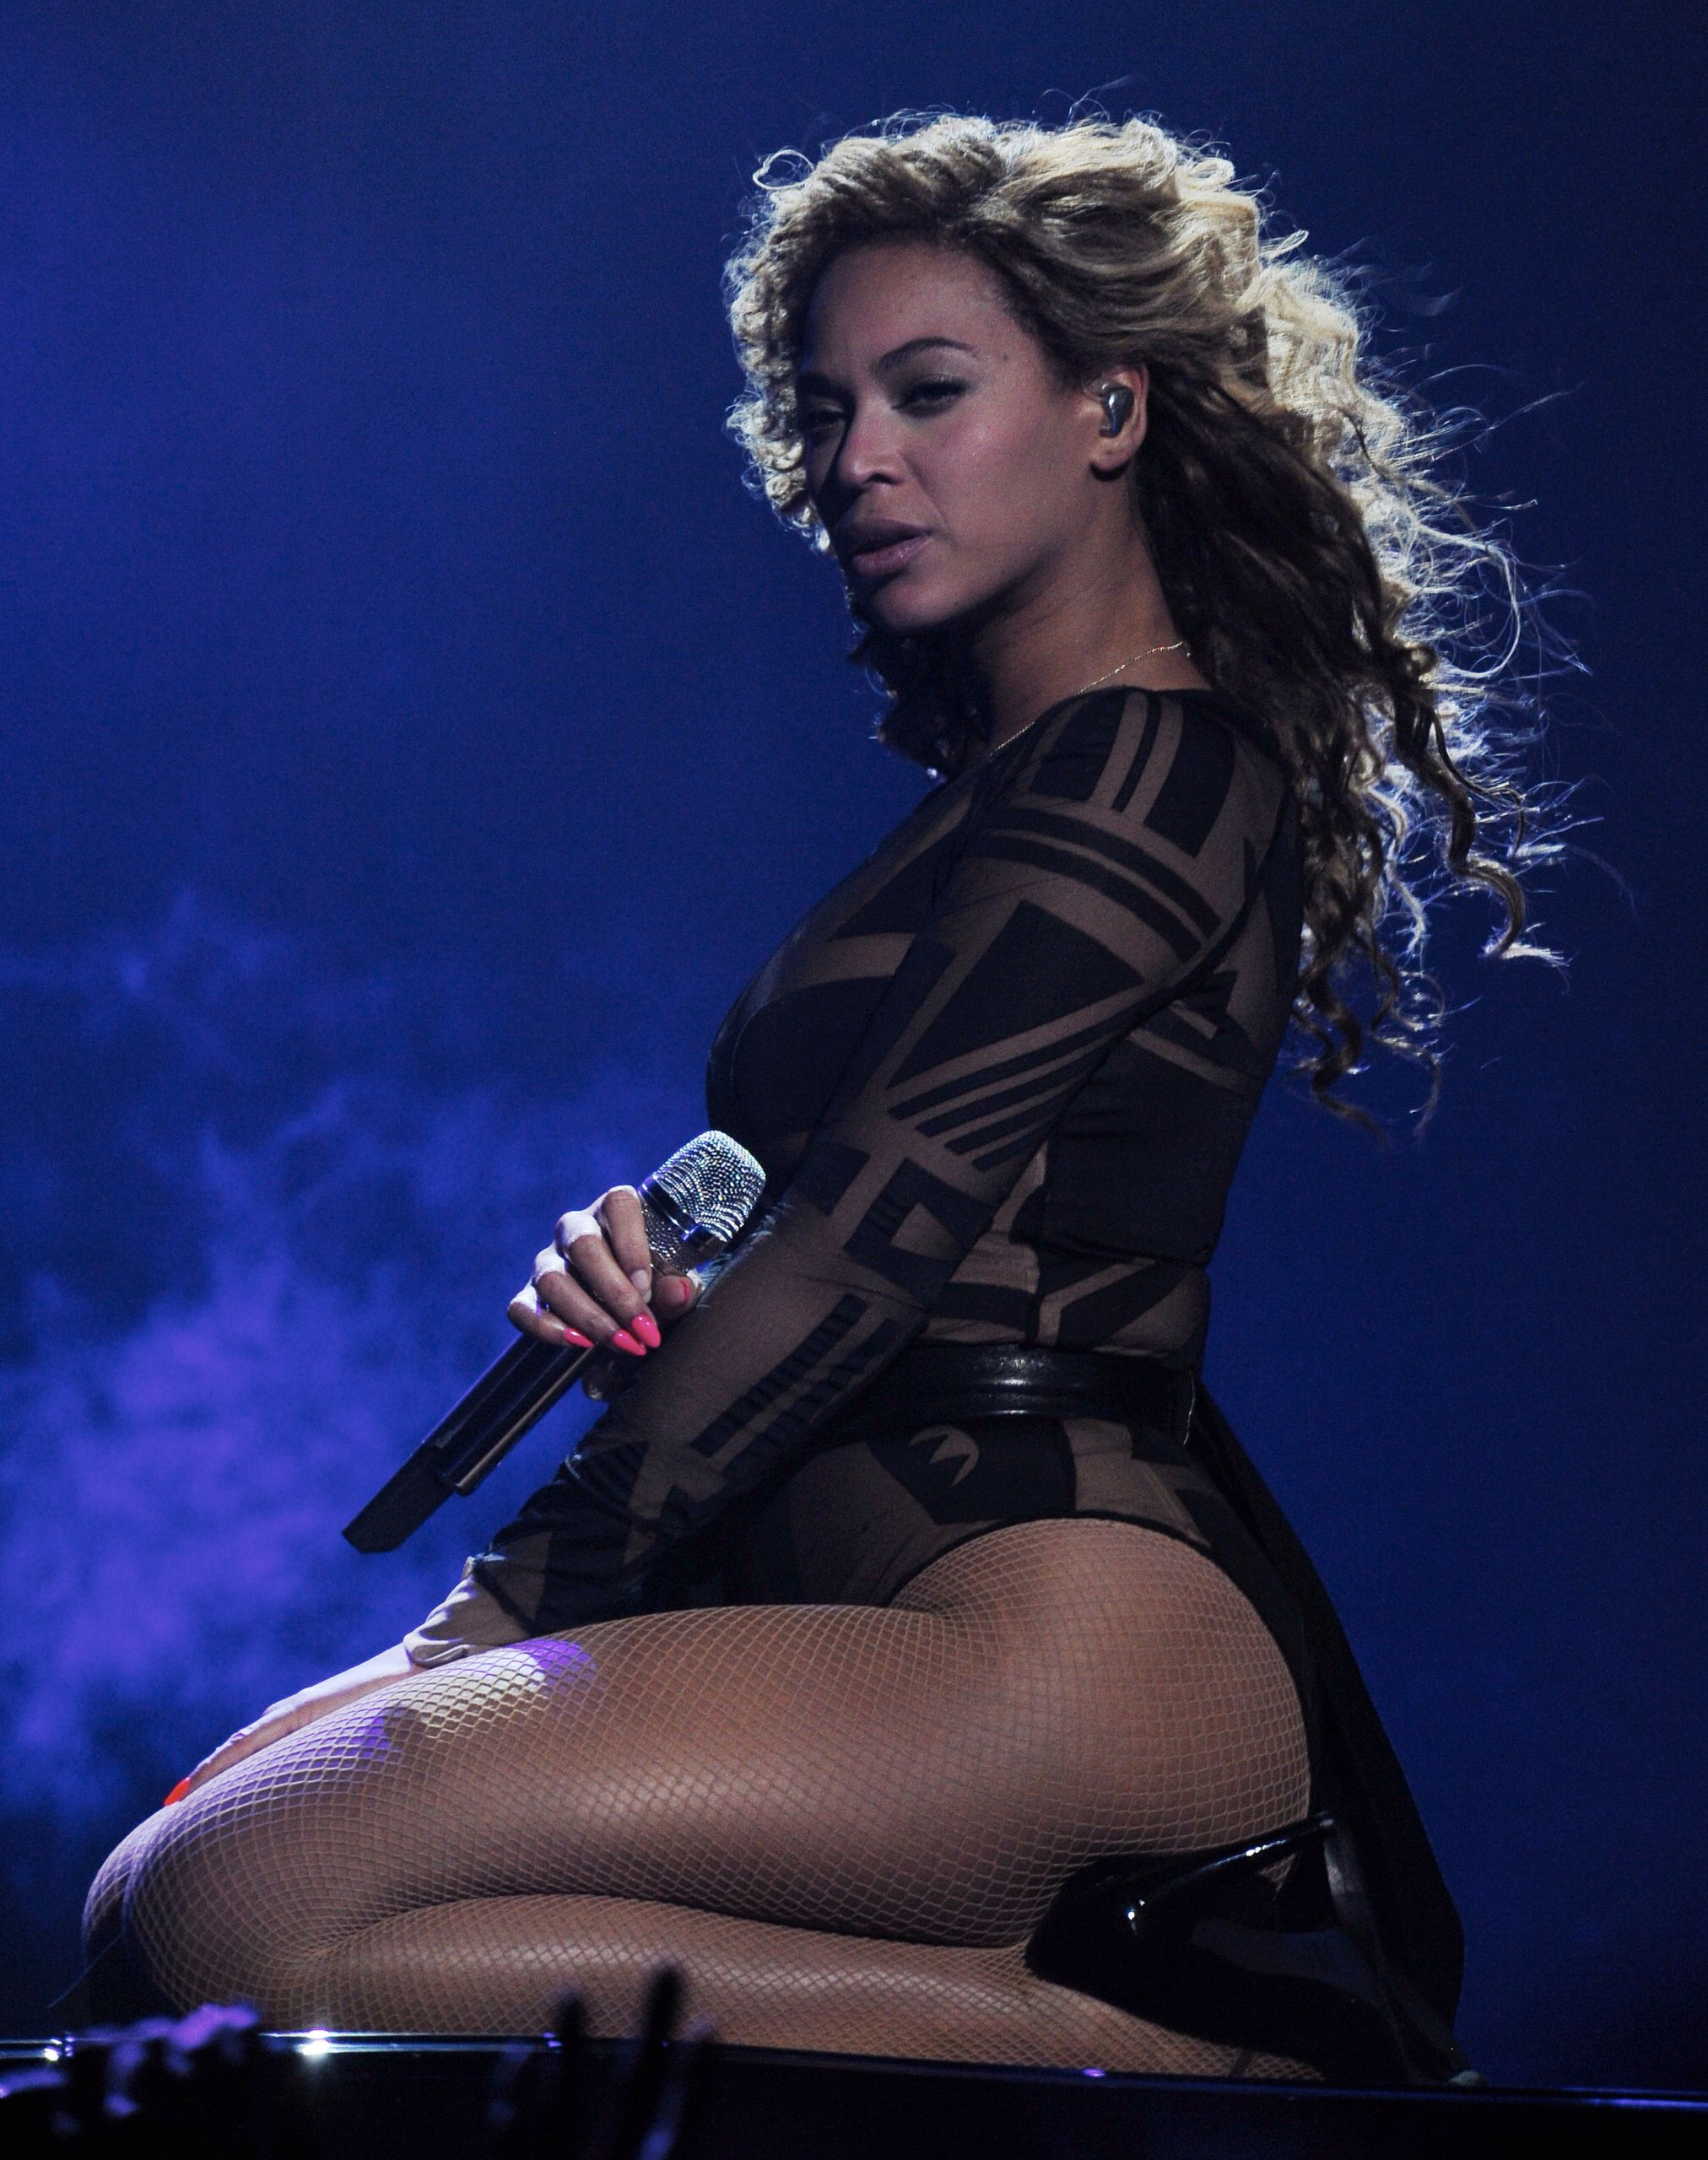 Revel Presents Beyoncé Live May 25 28 2012 also called Back to